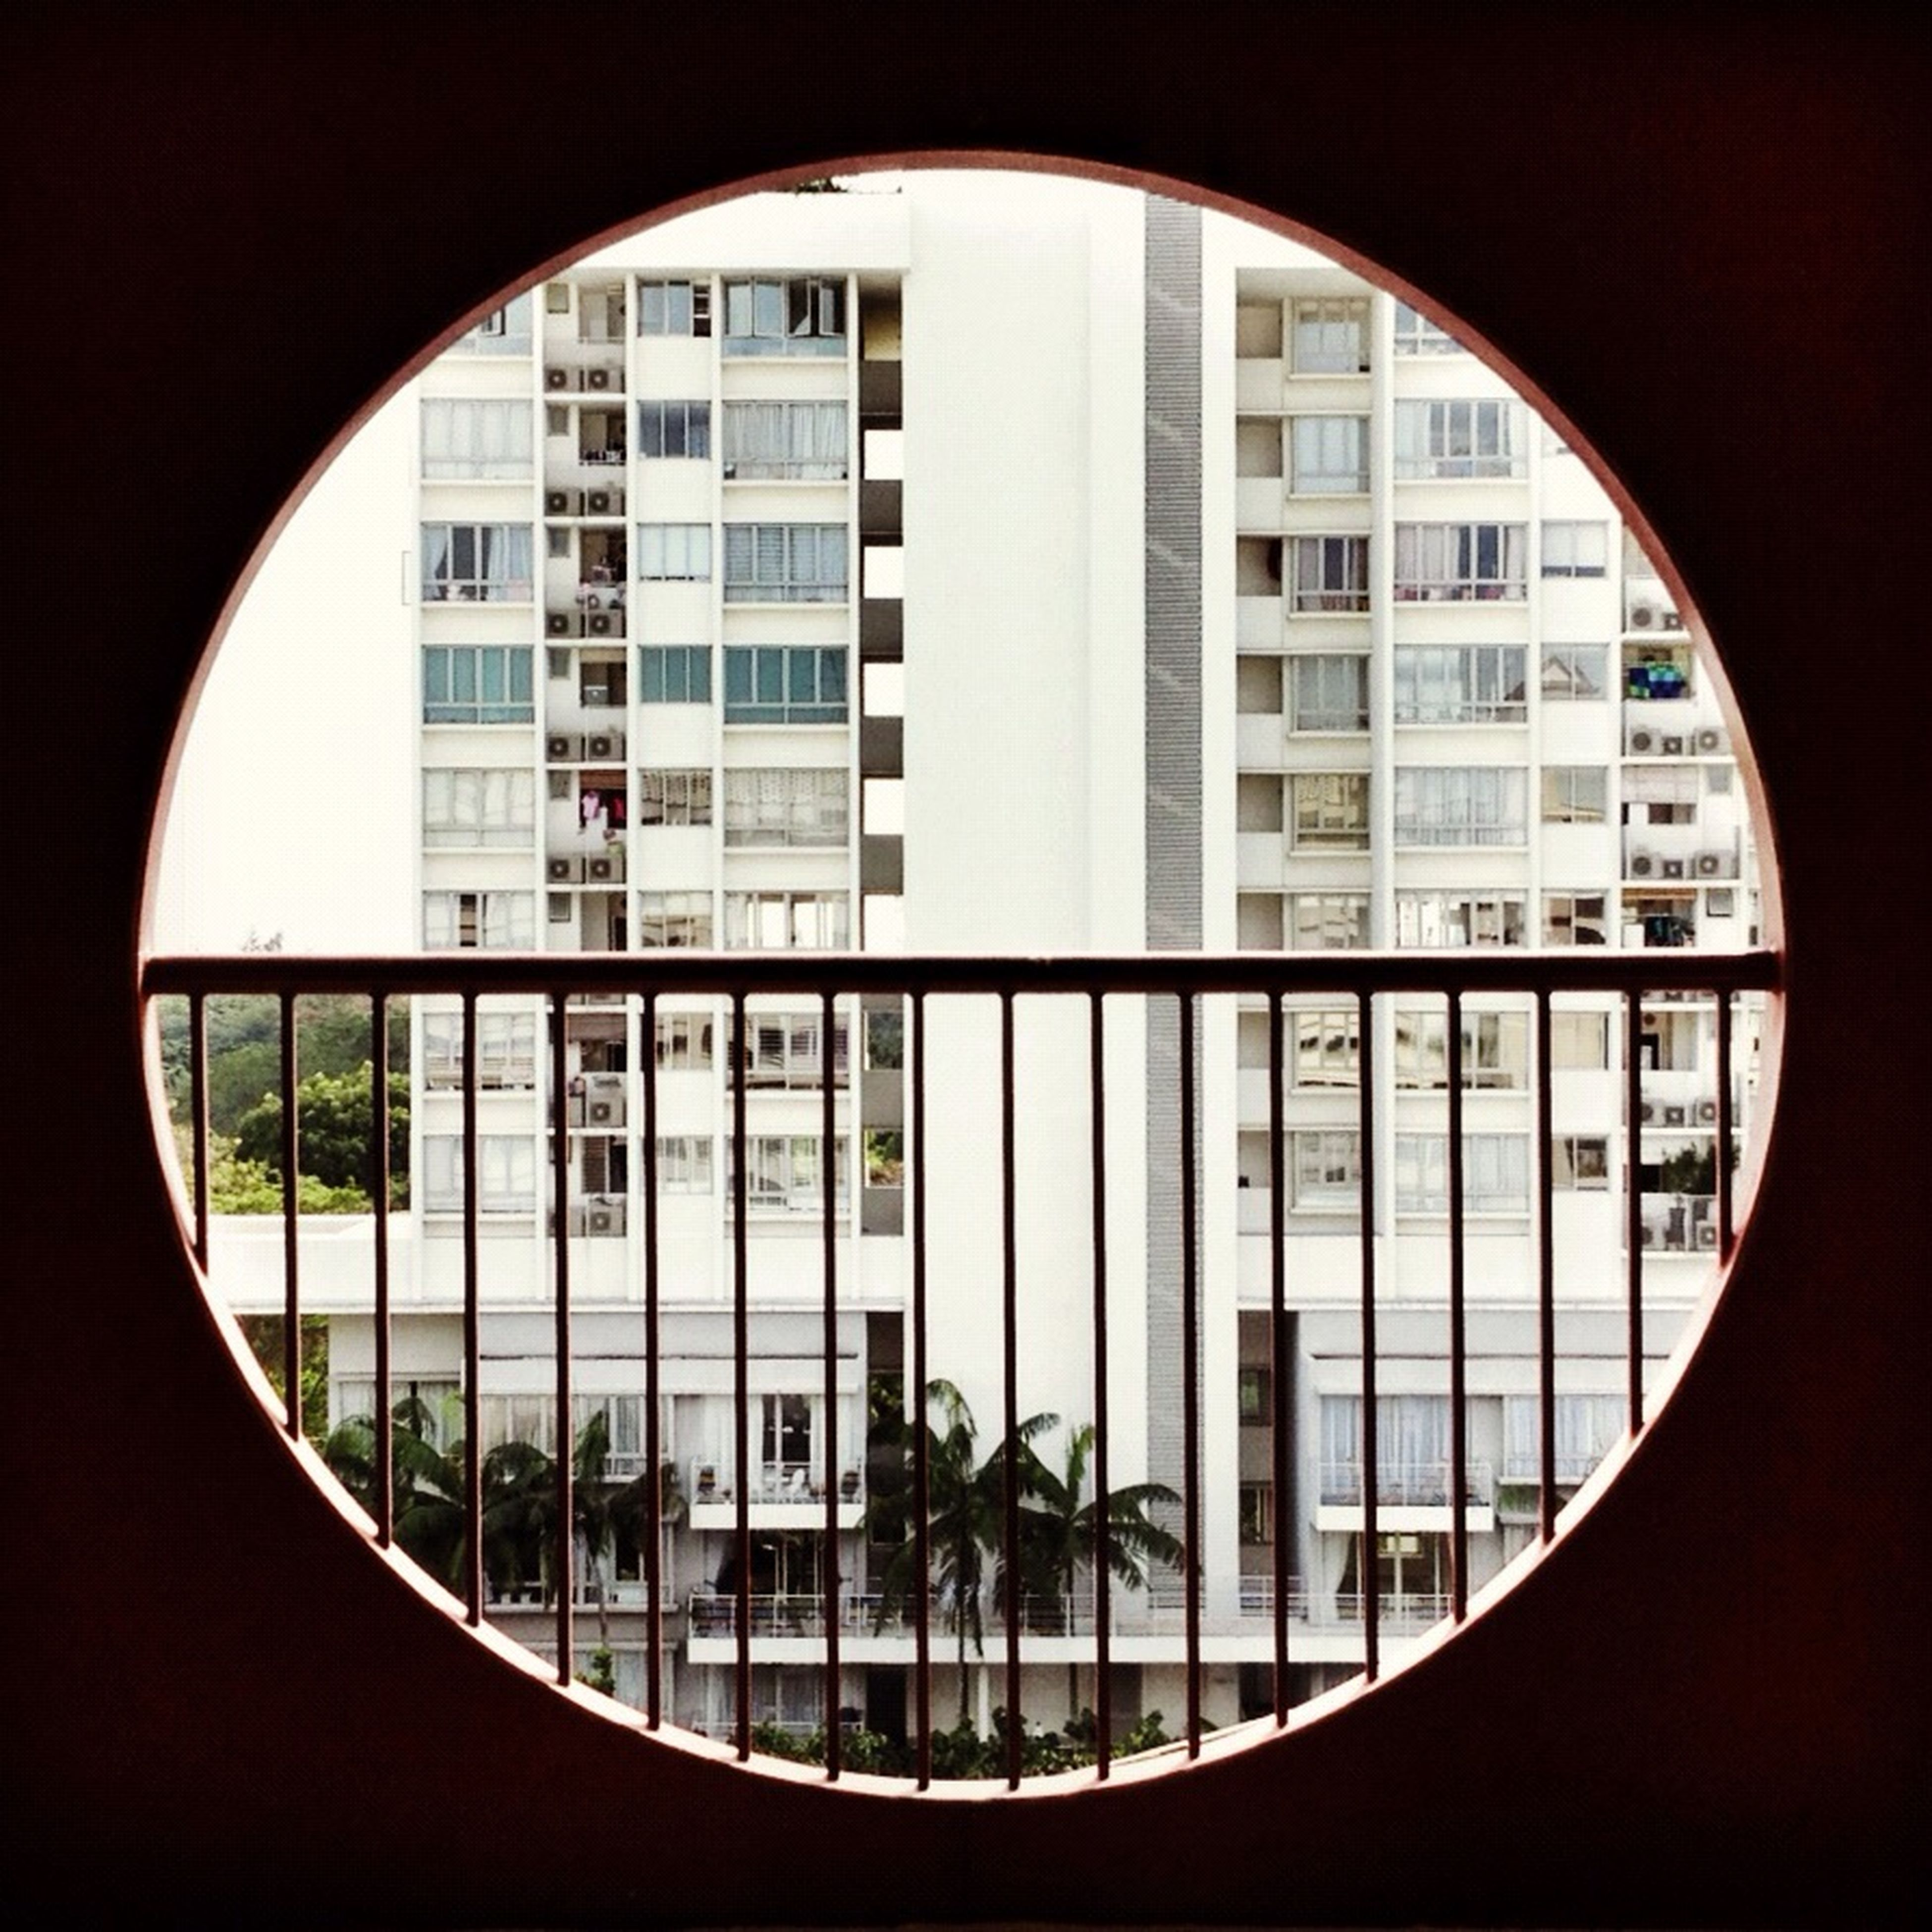 window, architecture, built structure, glass - material, building exterior, indoors, transparent, building, reflection, arch, geometric shape, modern, glass, city, day, shape, pattern, no people, residential structure, residential building